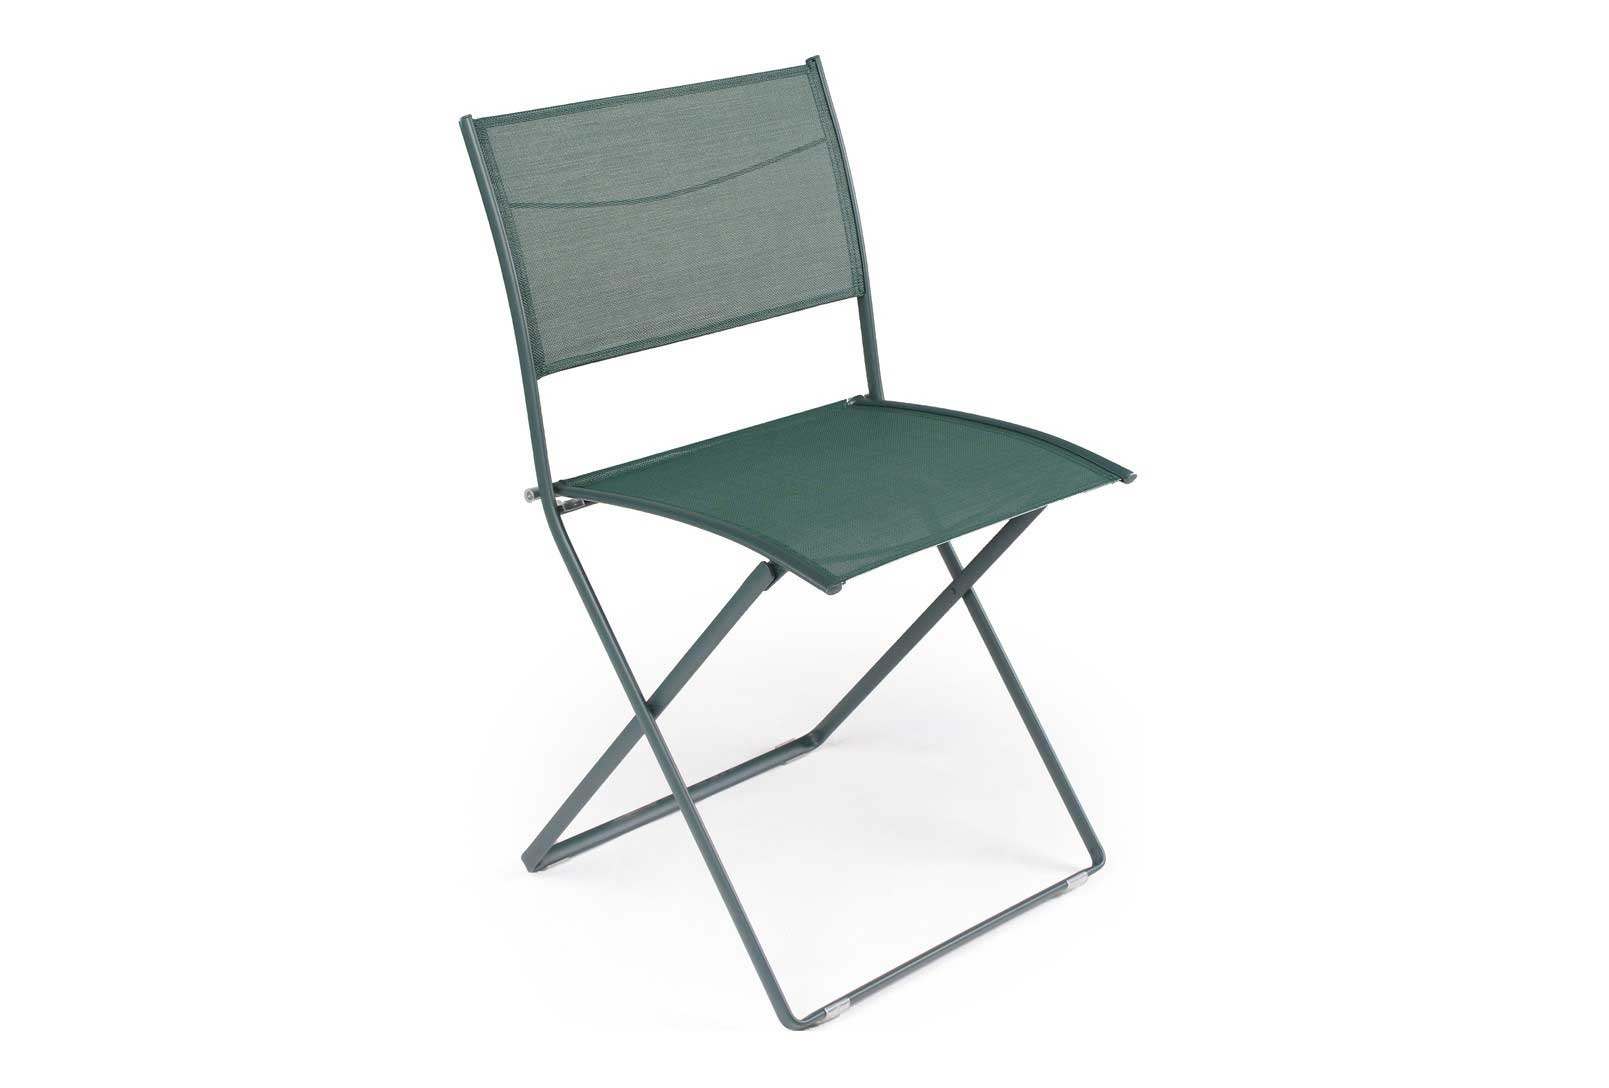 Outdoor Folding Chairs Chairs For Every Purpose Ross Stores Recalls Folding